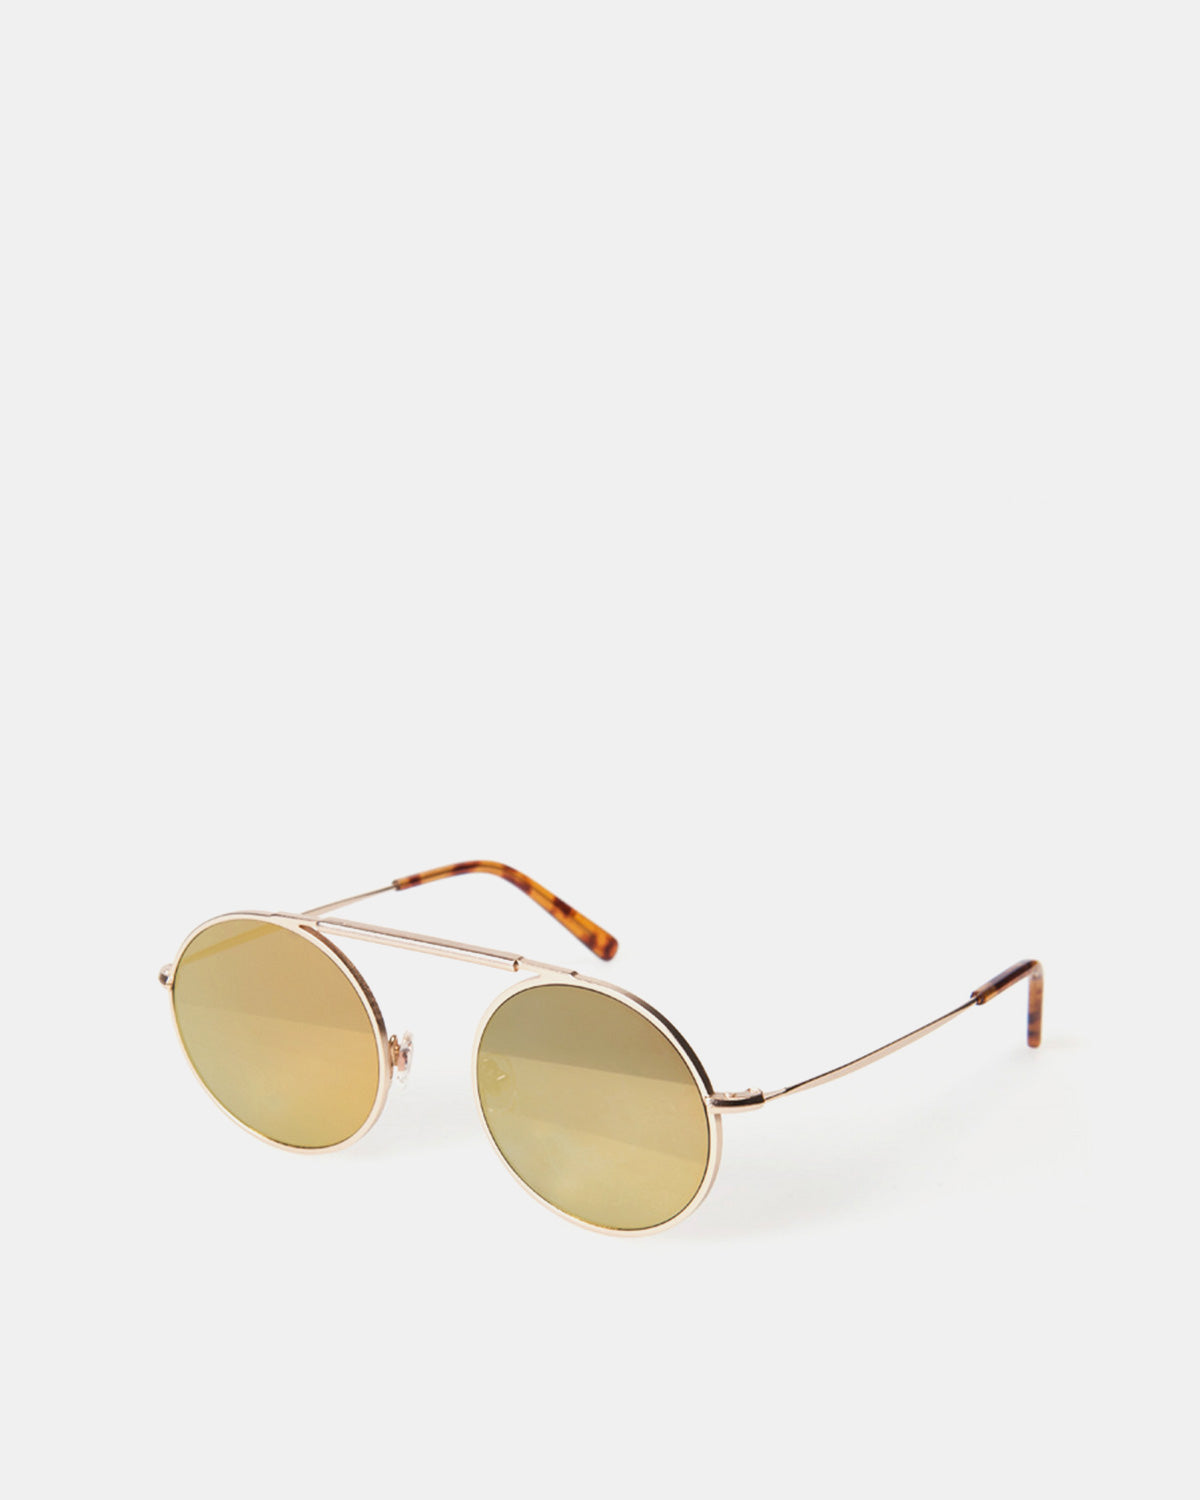 Han Kjobenhavn - Uncle Frame Sunglasses (Gold)